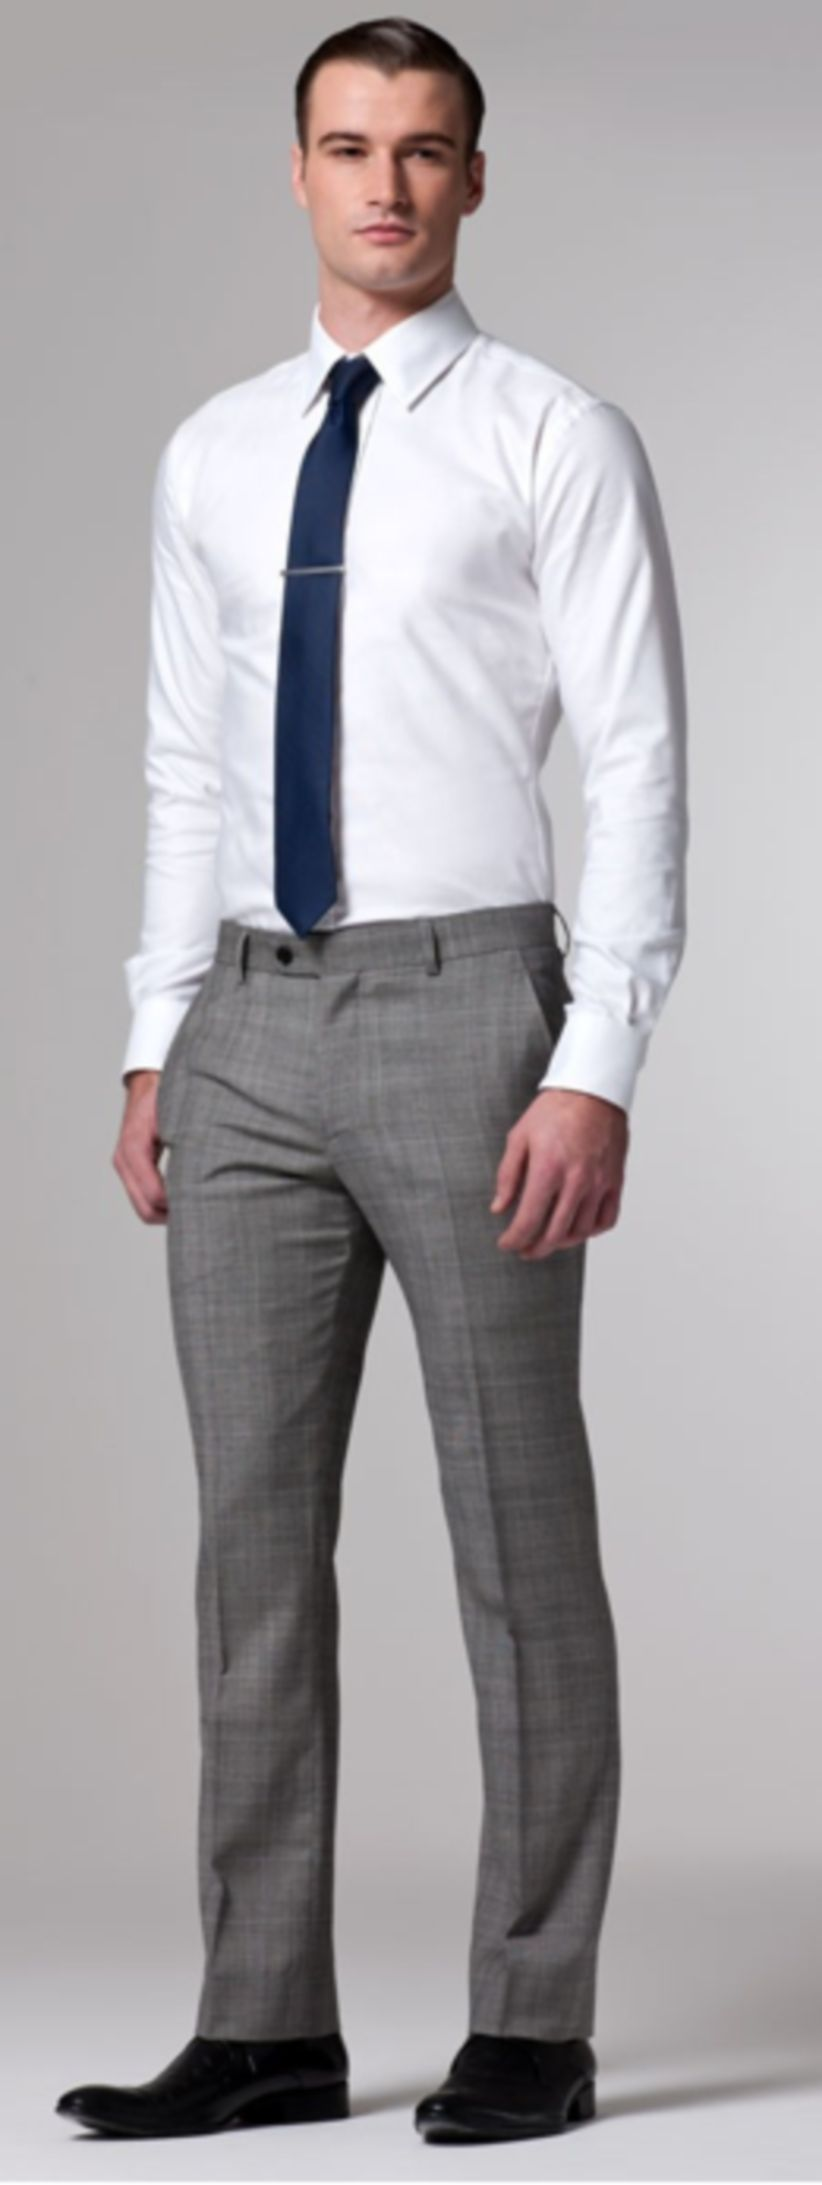 Amazing 36 Perfect Tie And Shirt For Men Business Http Upoutfit Com Index Php 2018 08 15 36 Perfect Ti White Shirt Men Blue Pants Men Black Pants Outfit Mens [ 2185 x 822 Pixel ]